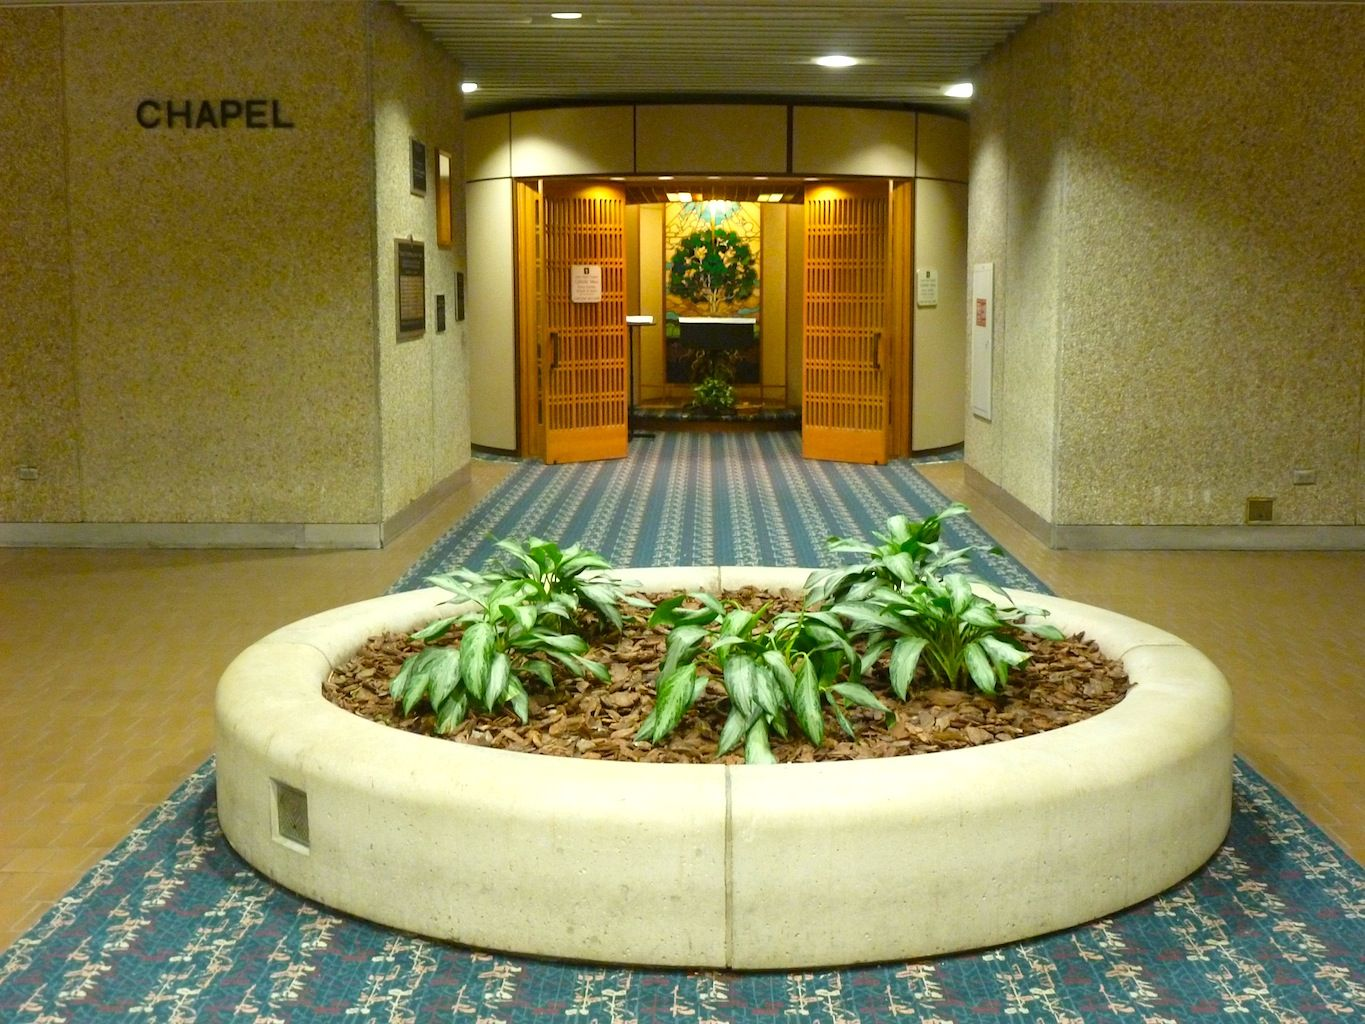 Airport chapels google search meditation rooms place